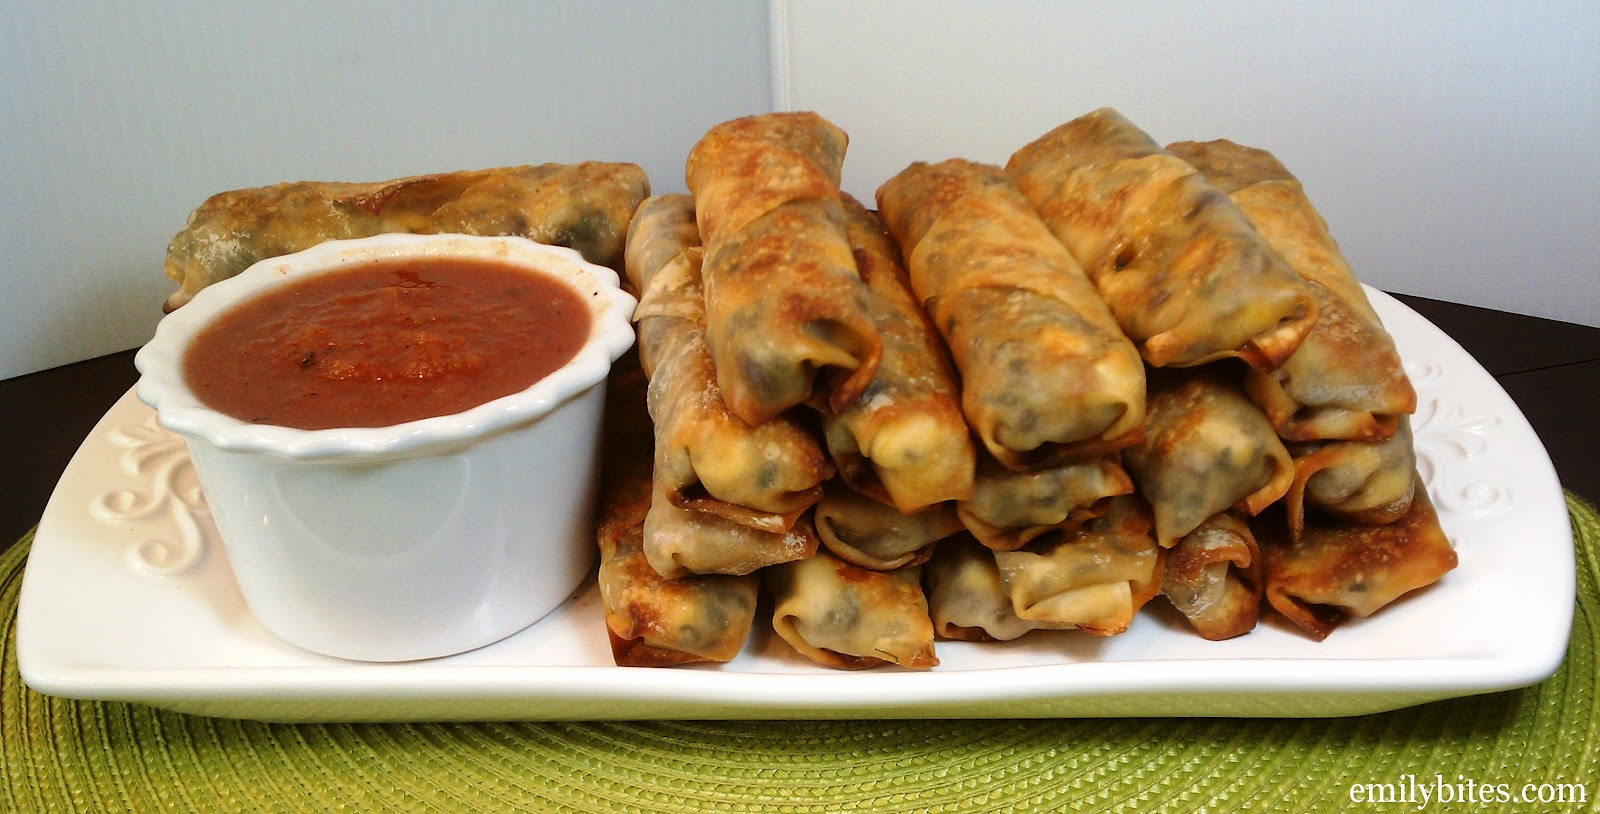 Yields 24 egg rolls. WW P+: 2 per egg roll (P+ calculated using the ...